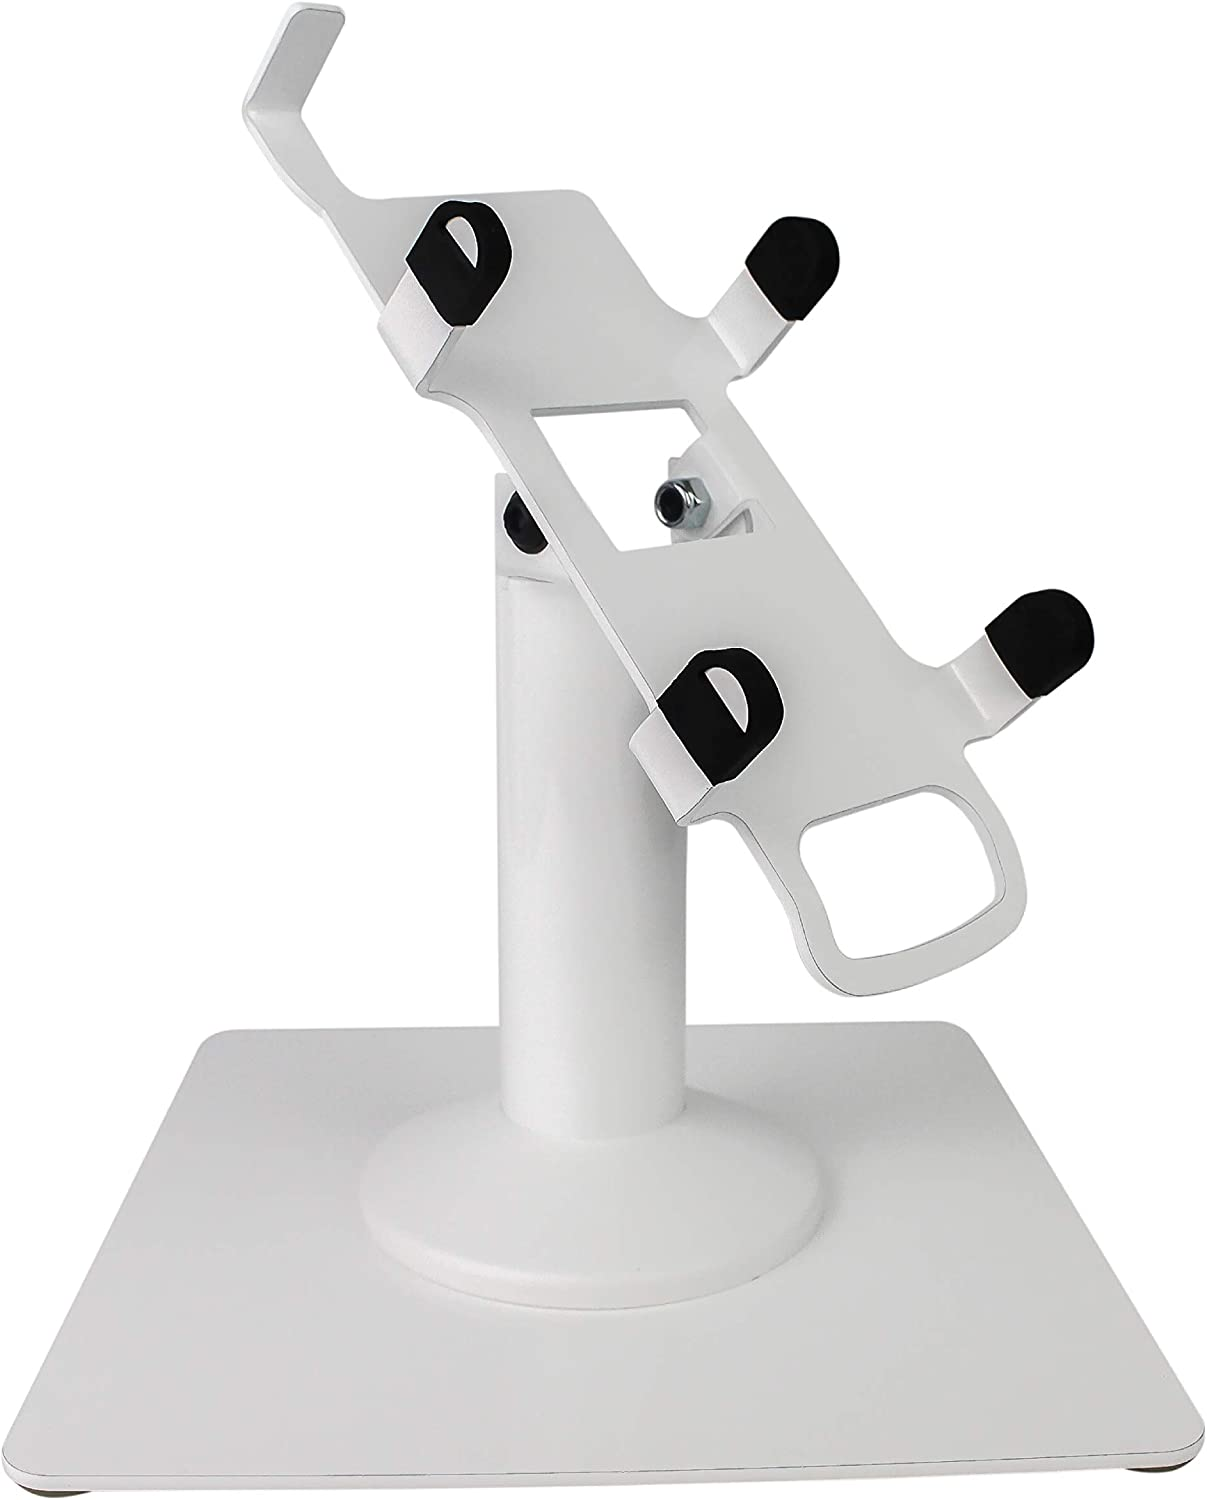 DCCStands Freestanding Swivel and Tilt Pax A920 Terminal Stand (White)